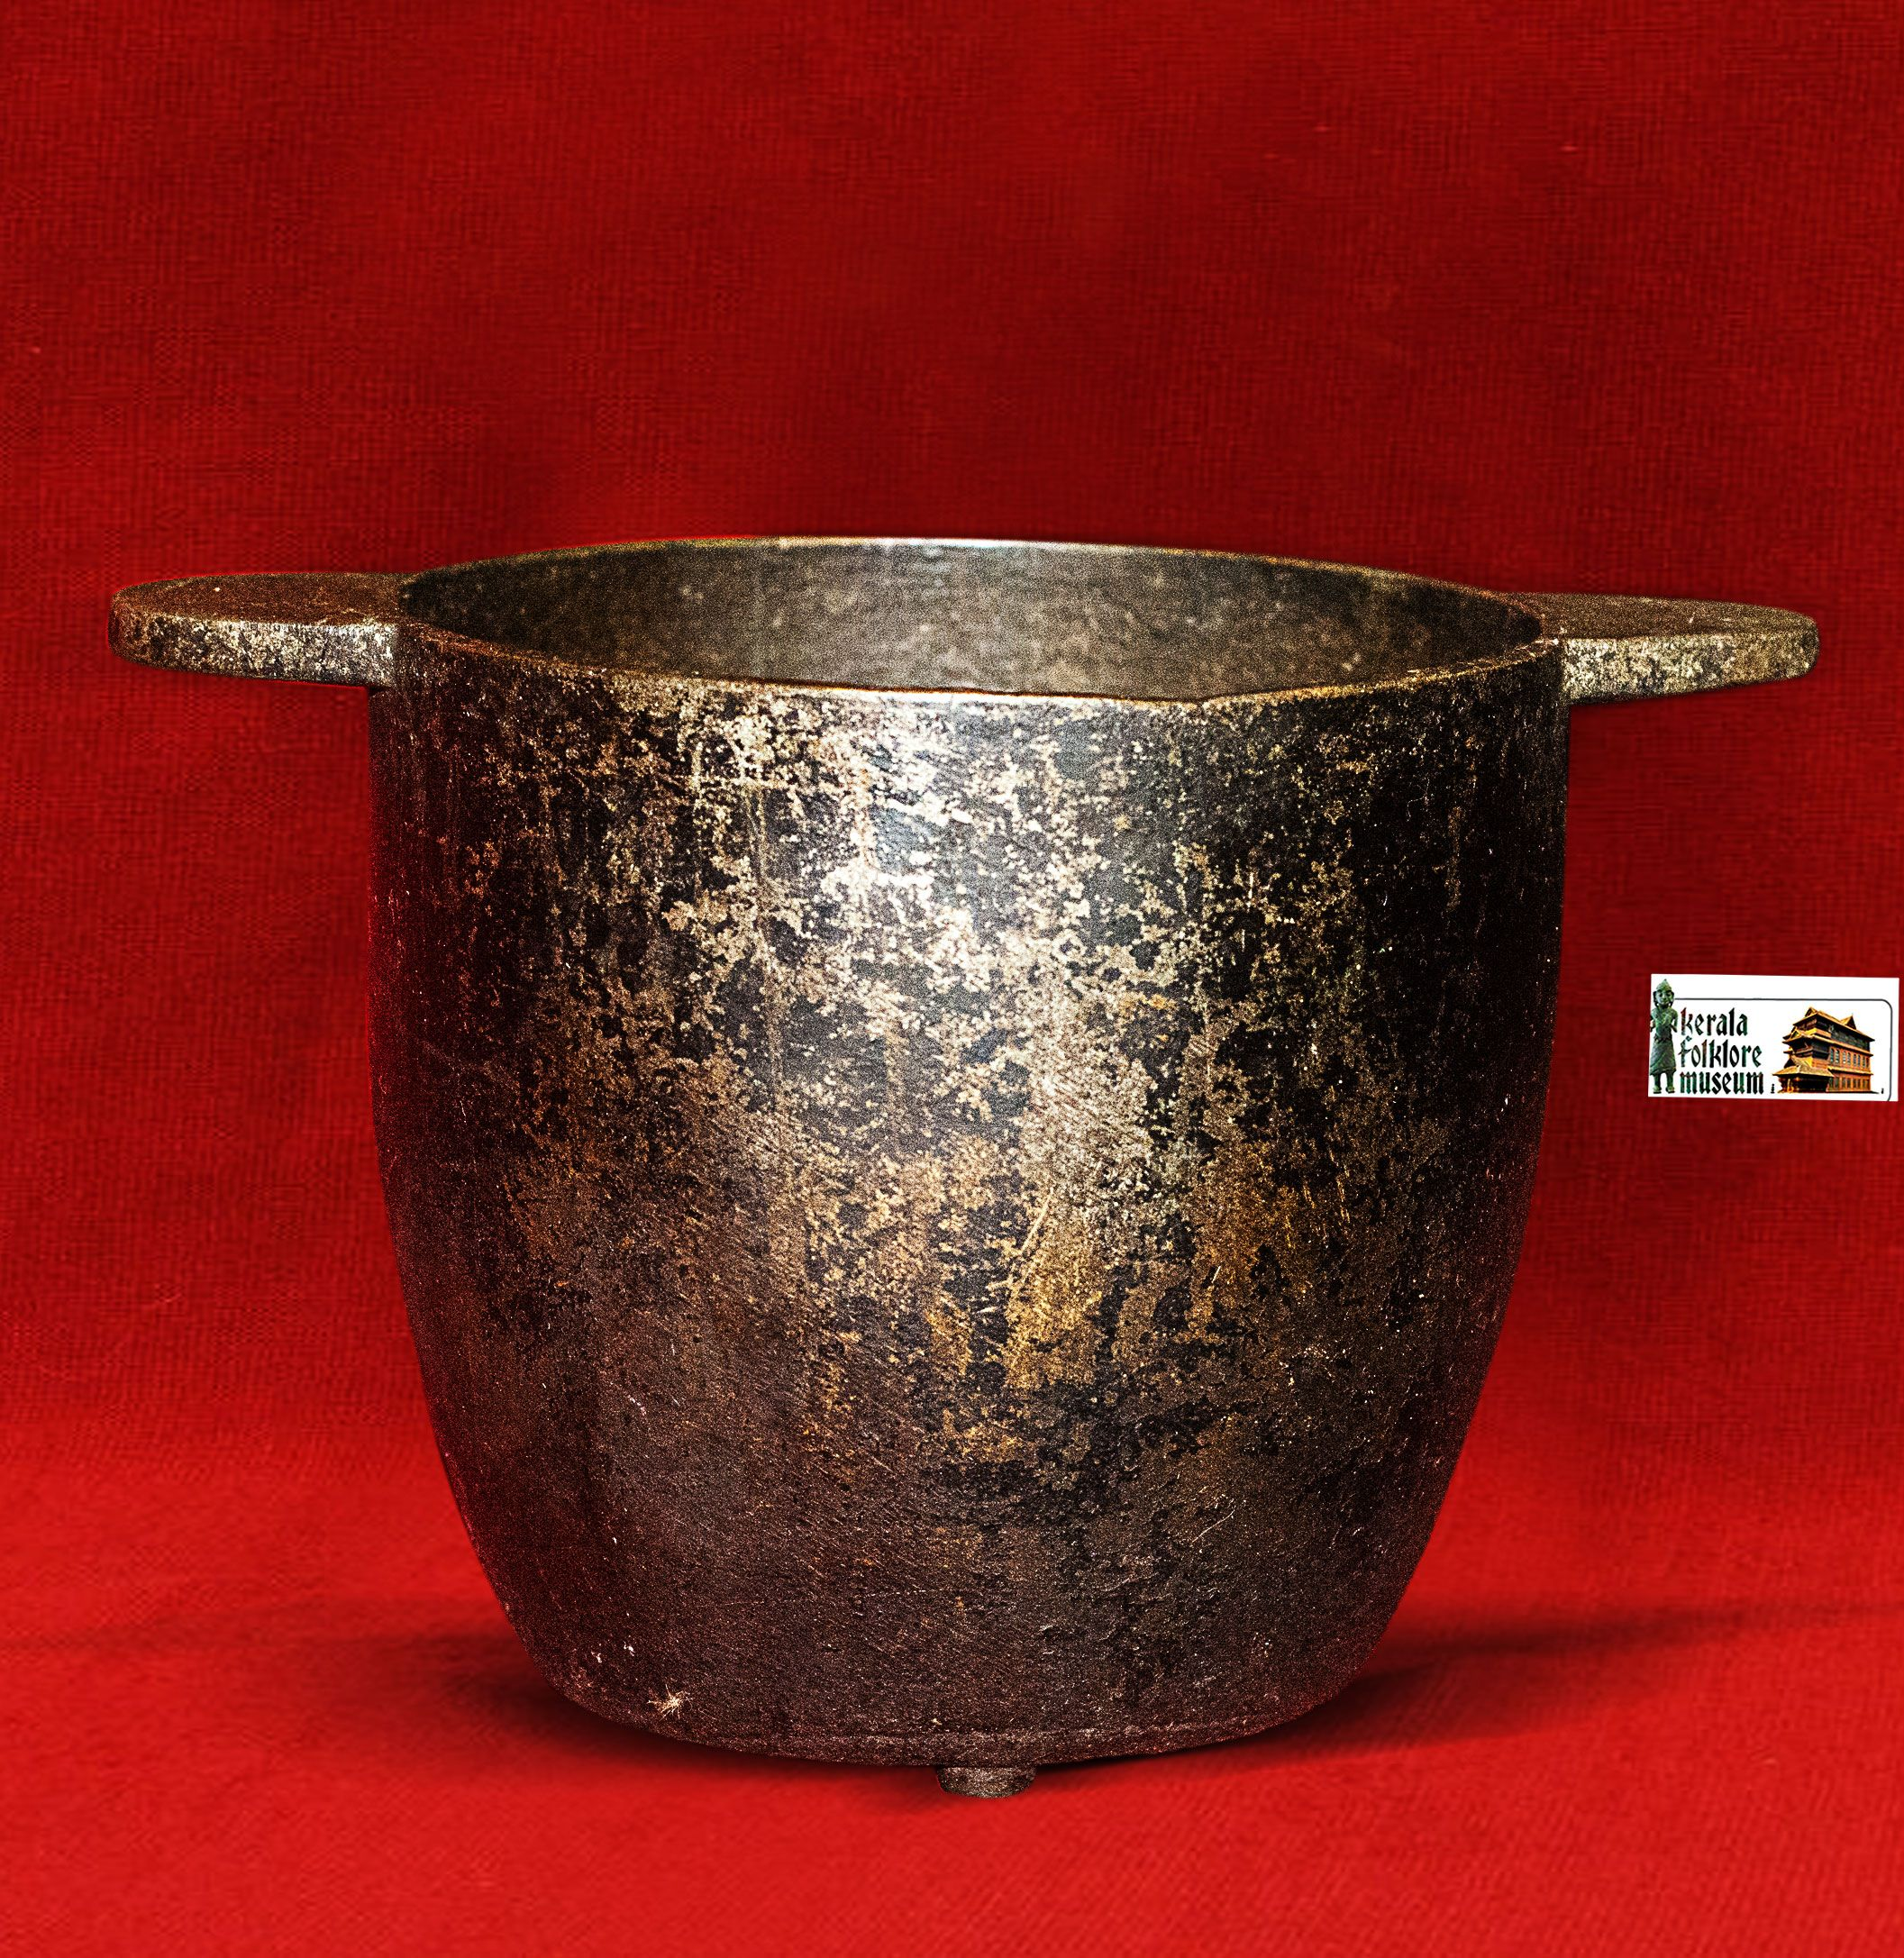 Antiques Kerala Antique Bronze Utensil Collections Keralafolkloremuseum In 2020 Moscow Mule Mugs Antiques Glassware